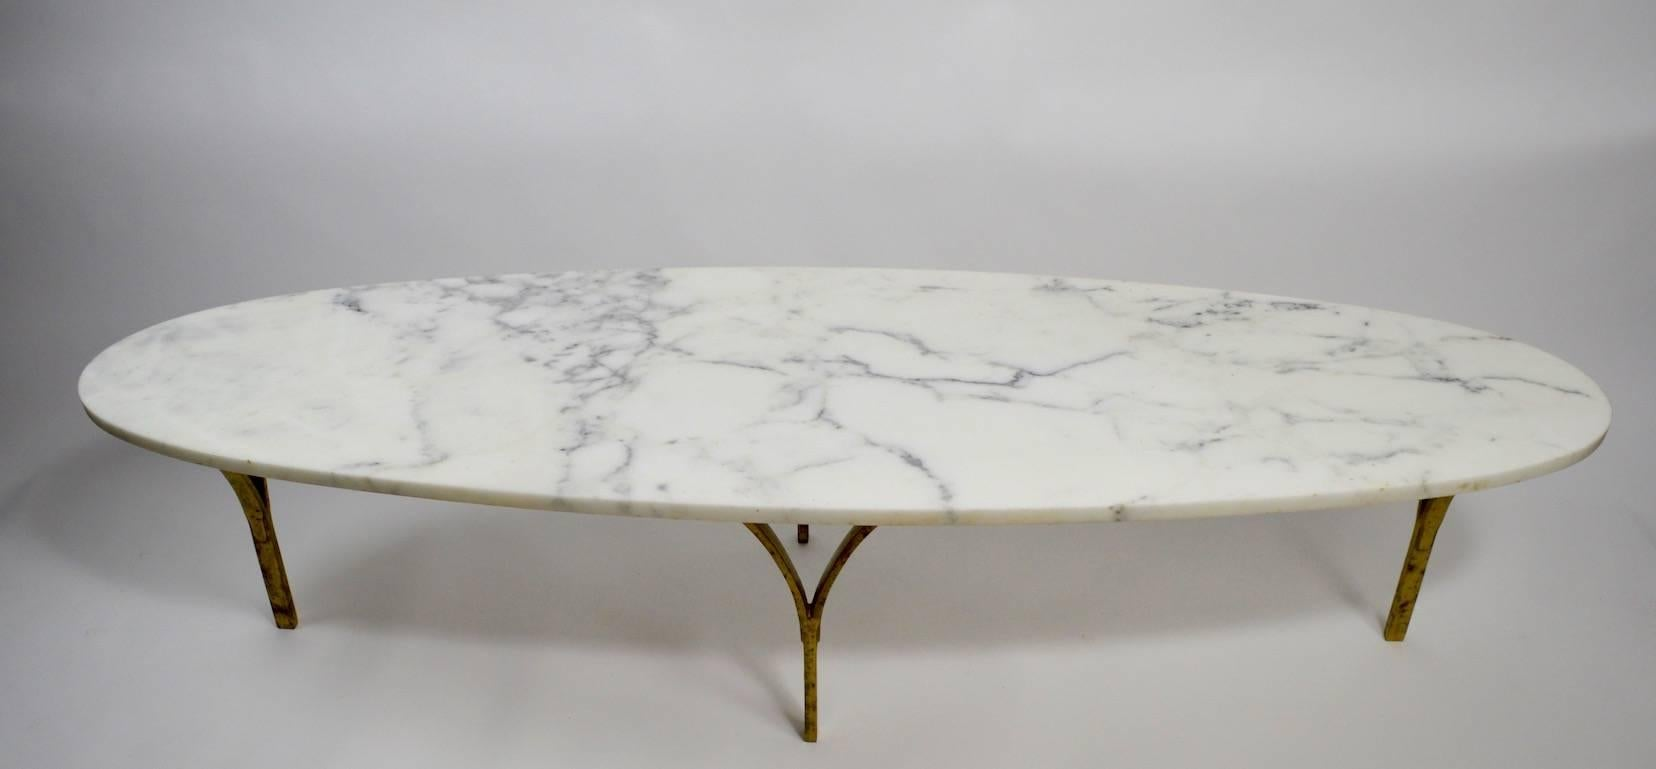 Charmant Oval Marble Top Coffee Table With Brass Legs For Sale 2